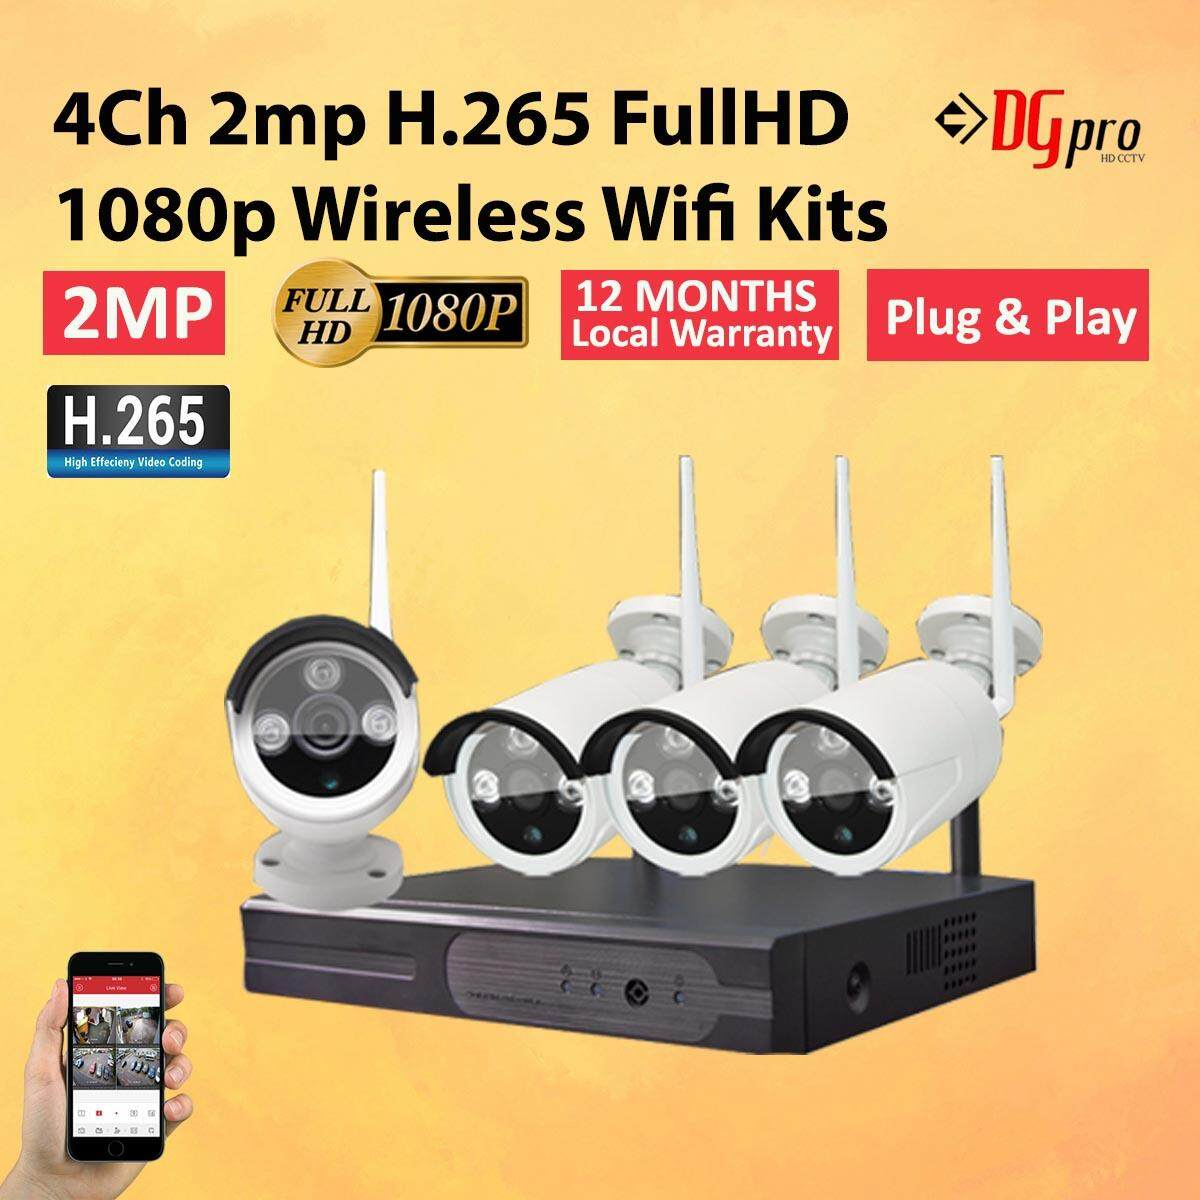 4CH H 265+ Full HD 1080P 2MP Wireless WIFI CCTV IP Camera Kits (12 Months  Local Warranty)